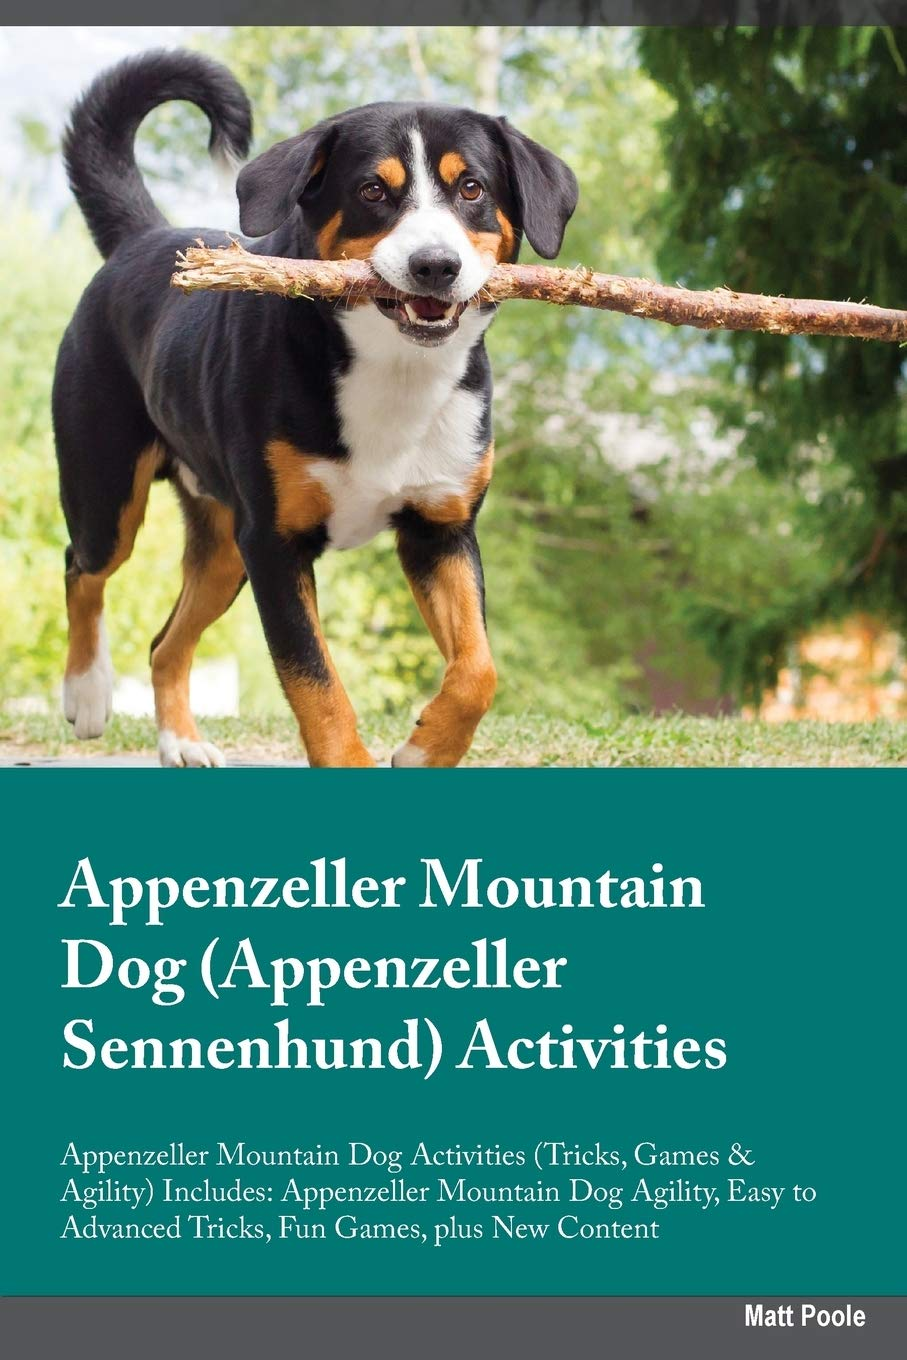 Buy Appenzeller Mountain Dog Appenzeller Sennenhund